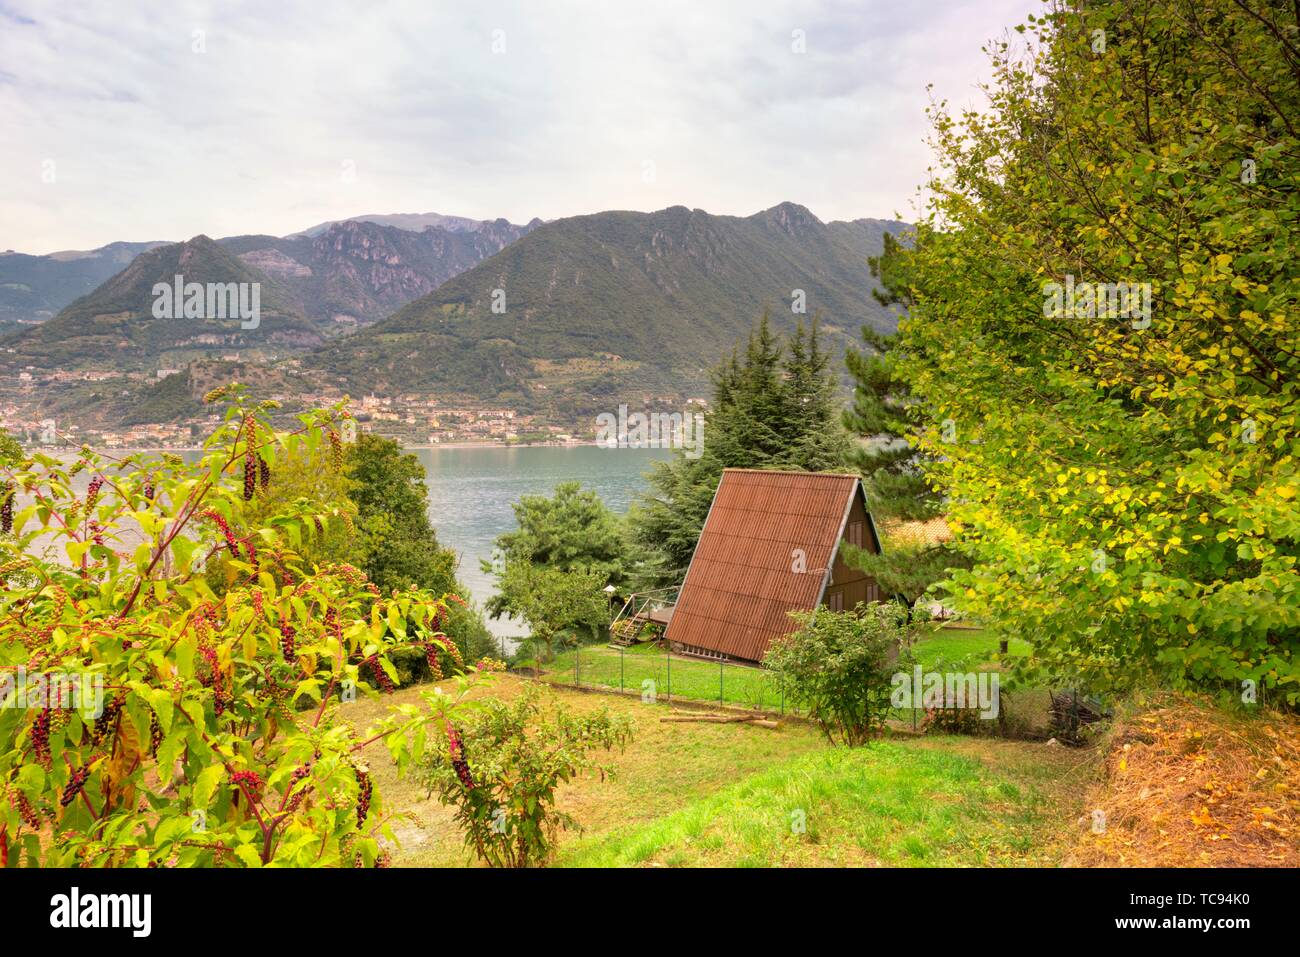 Monte Isola, Lombardy, Italy - Stock Image